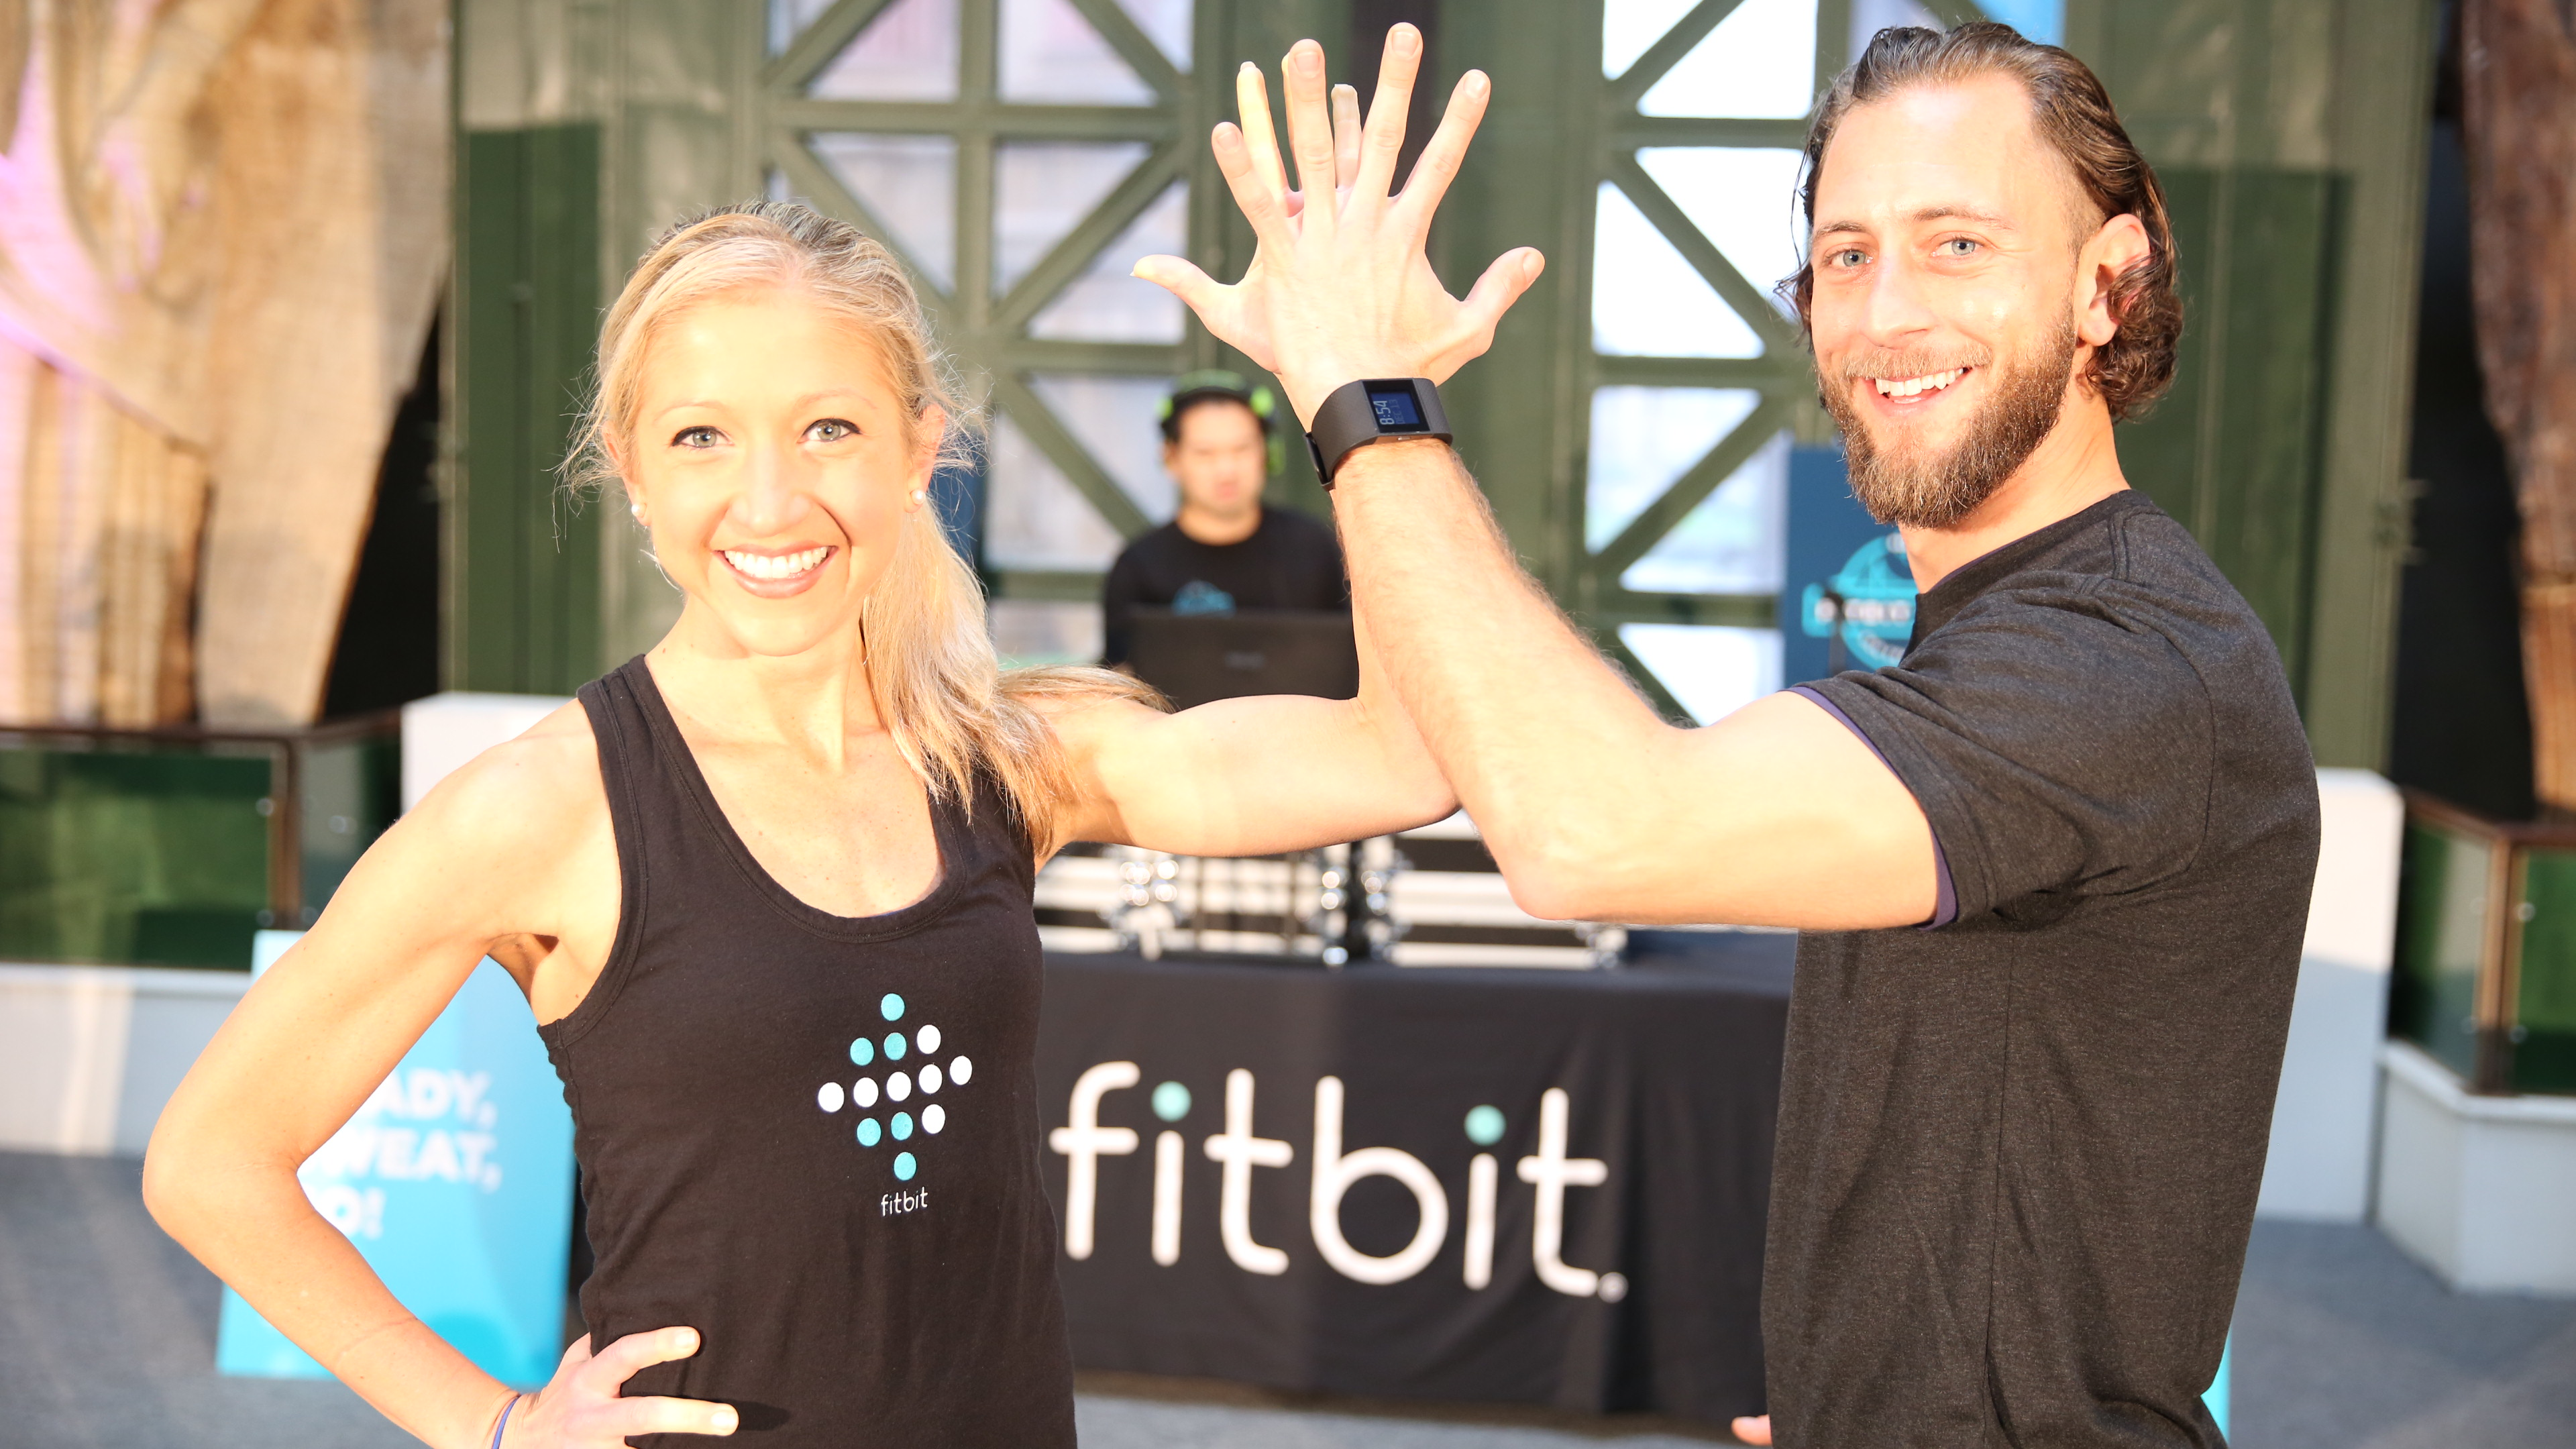 San Francisco Fitbit local ambassadors: Jeremy Falk and Caroline Jordan